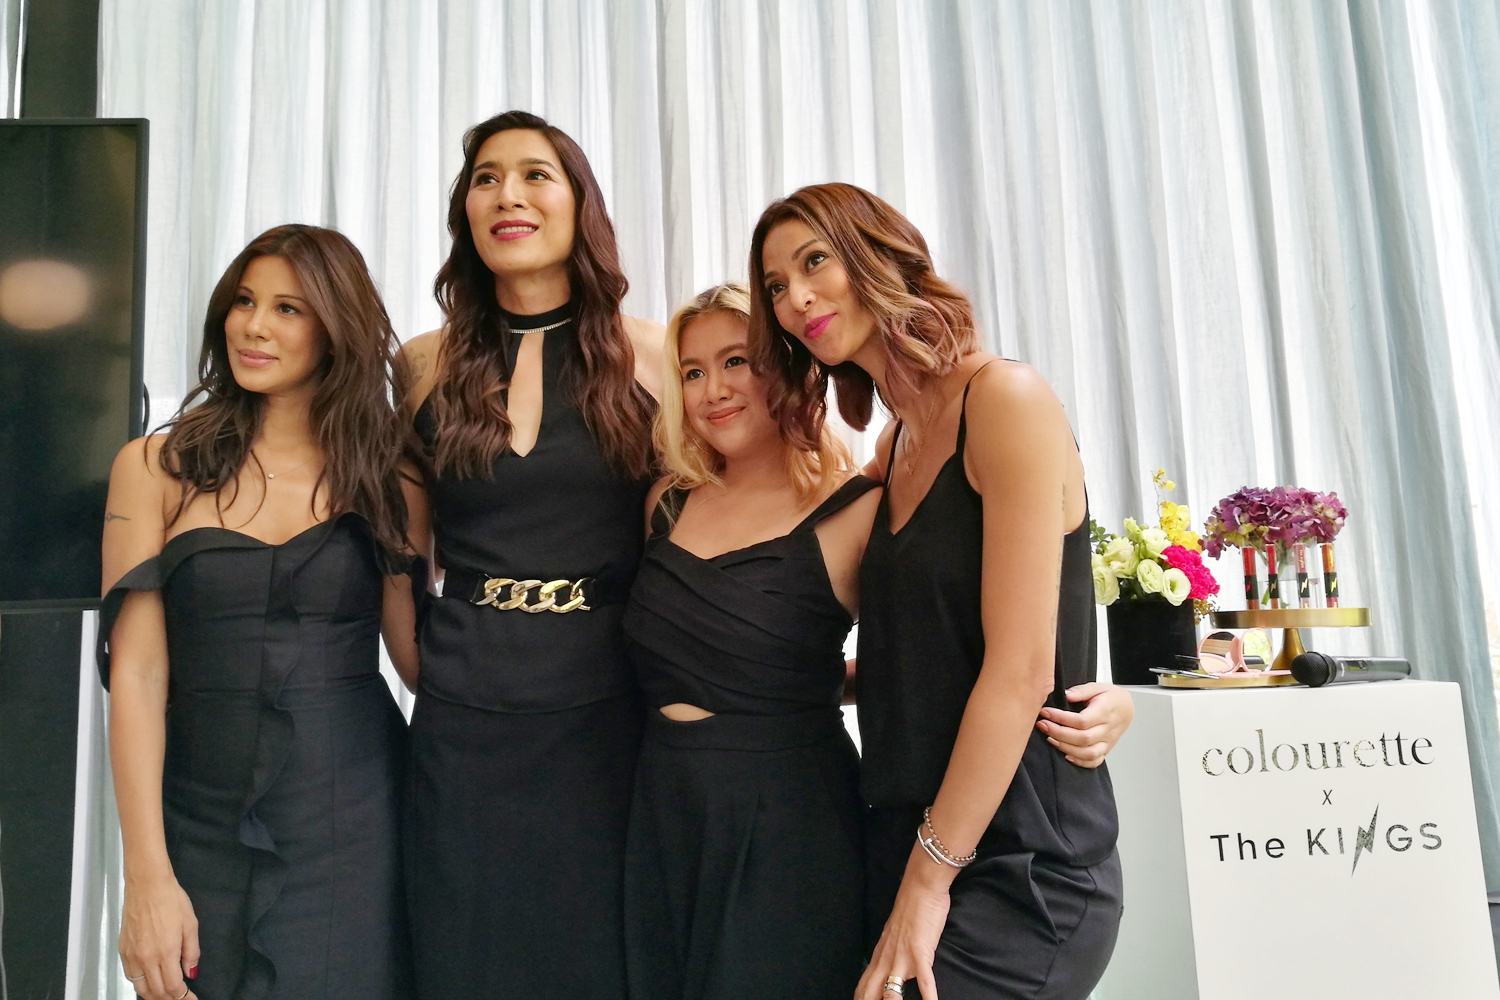 From left: Tricia Centenera, Angie Mead King, Nina Dizon, Joey Mead King